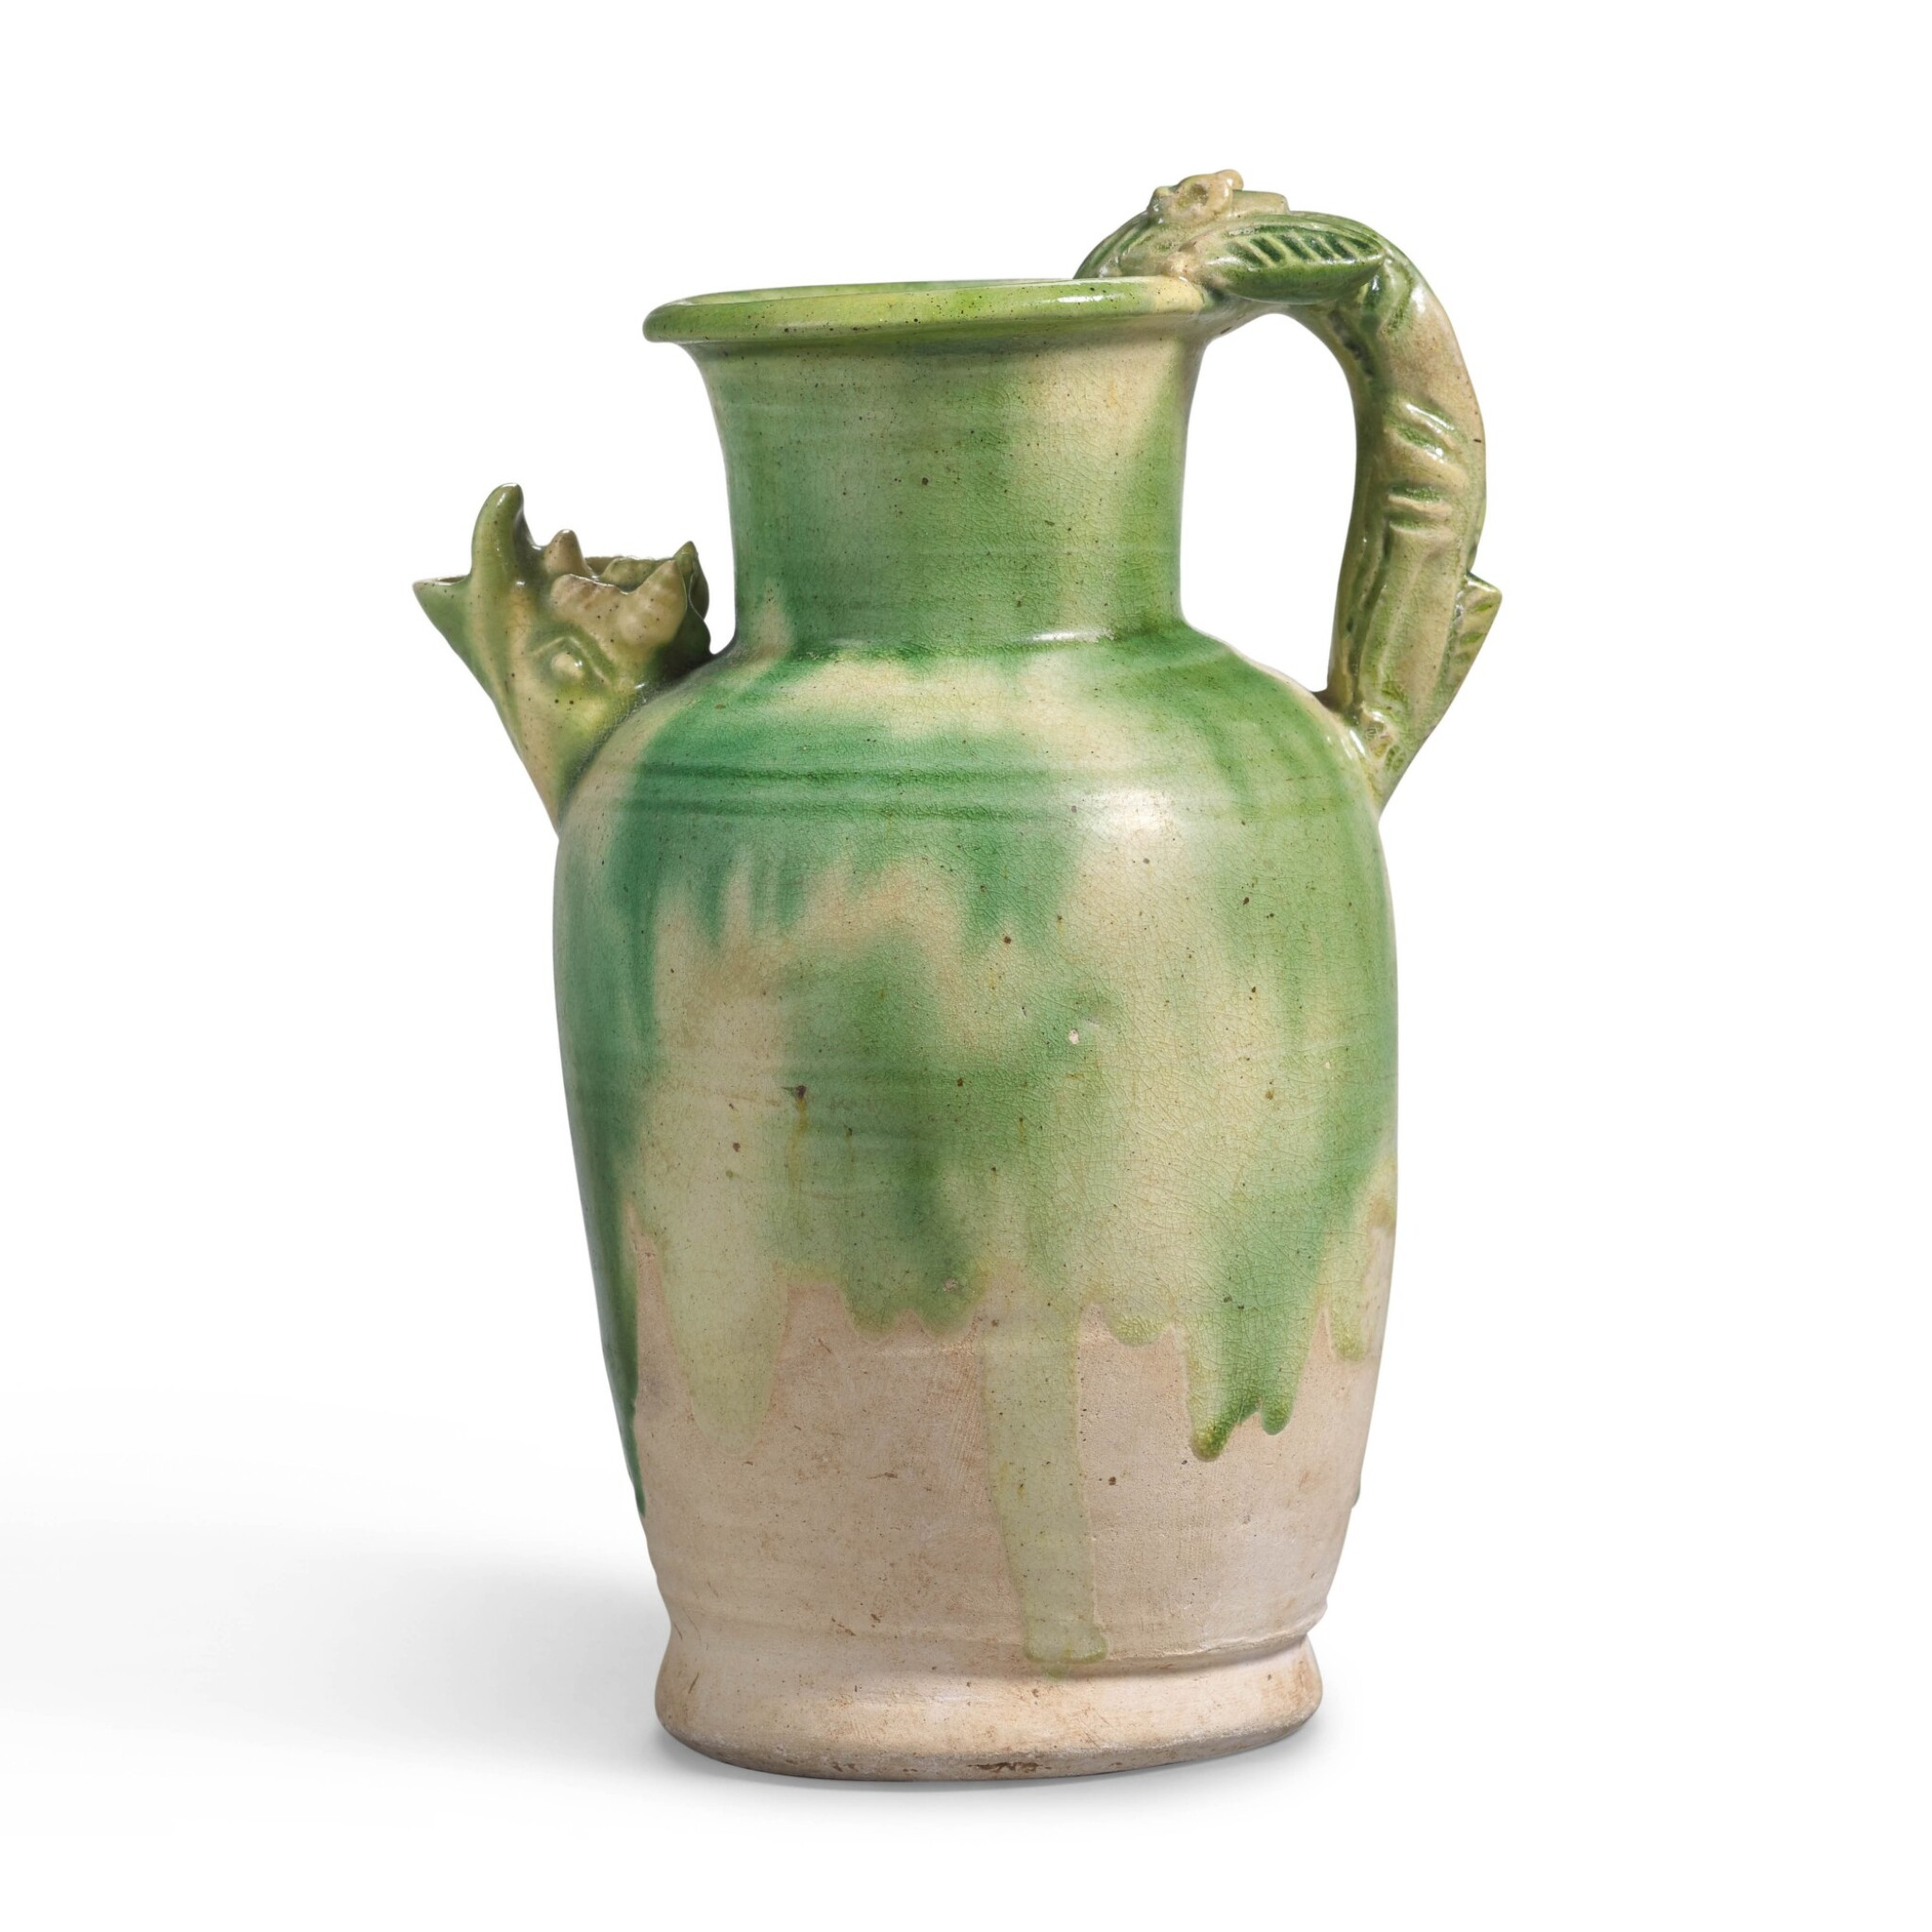 View 1 of Lot 235. A RARE GREEN-SPLASHED 'DRAGON' EWER, TANG DYNASTY | 唐 白釉綠彩龍首執壺.